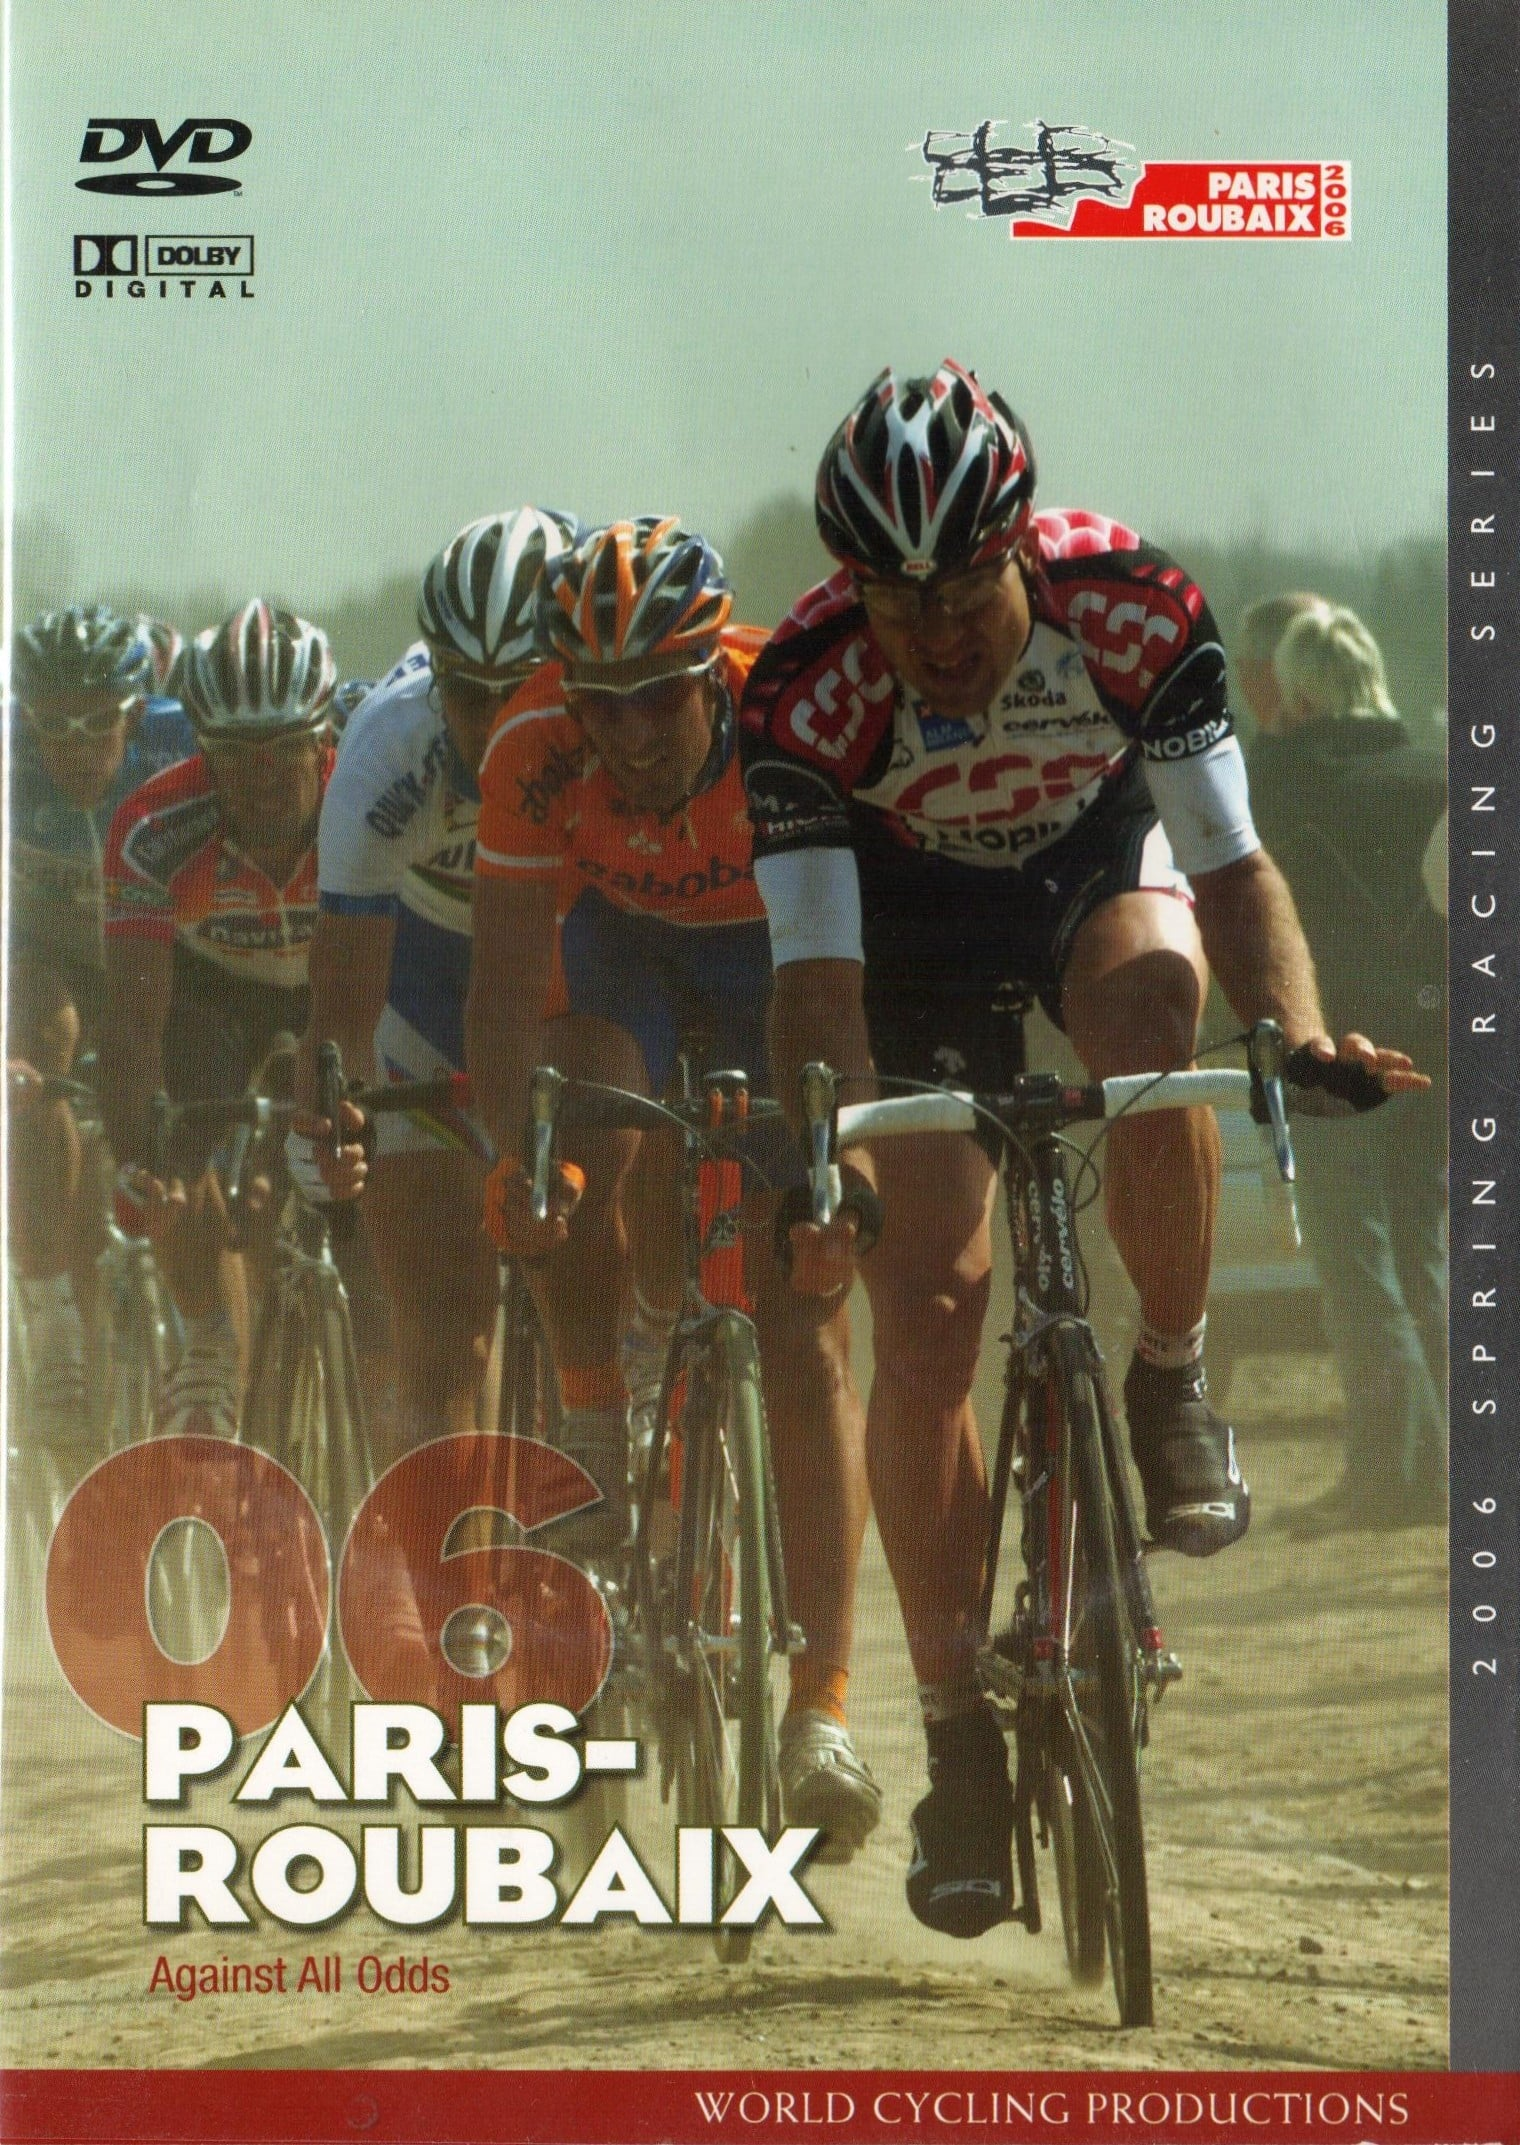 2006 Paris Roubaix (2006)